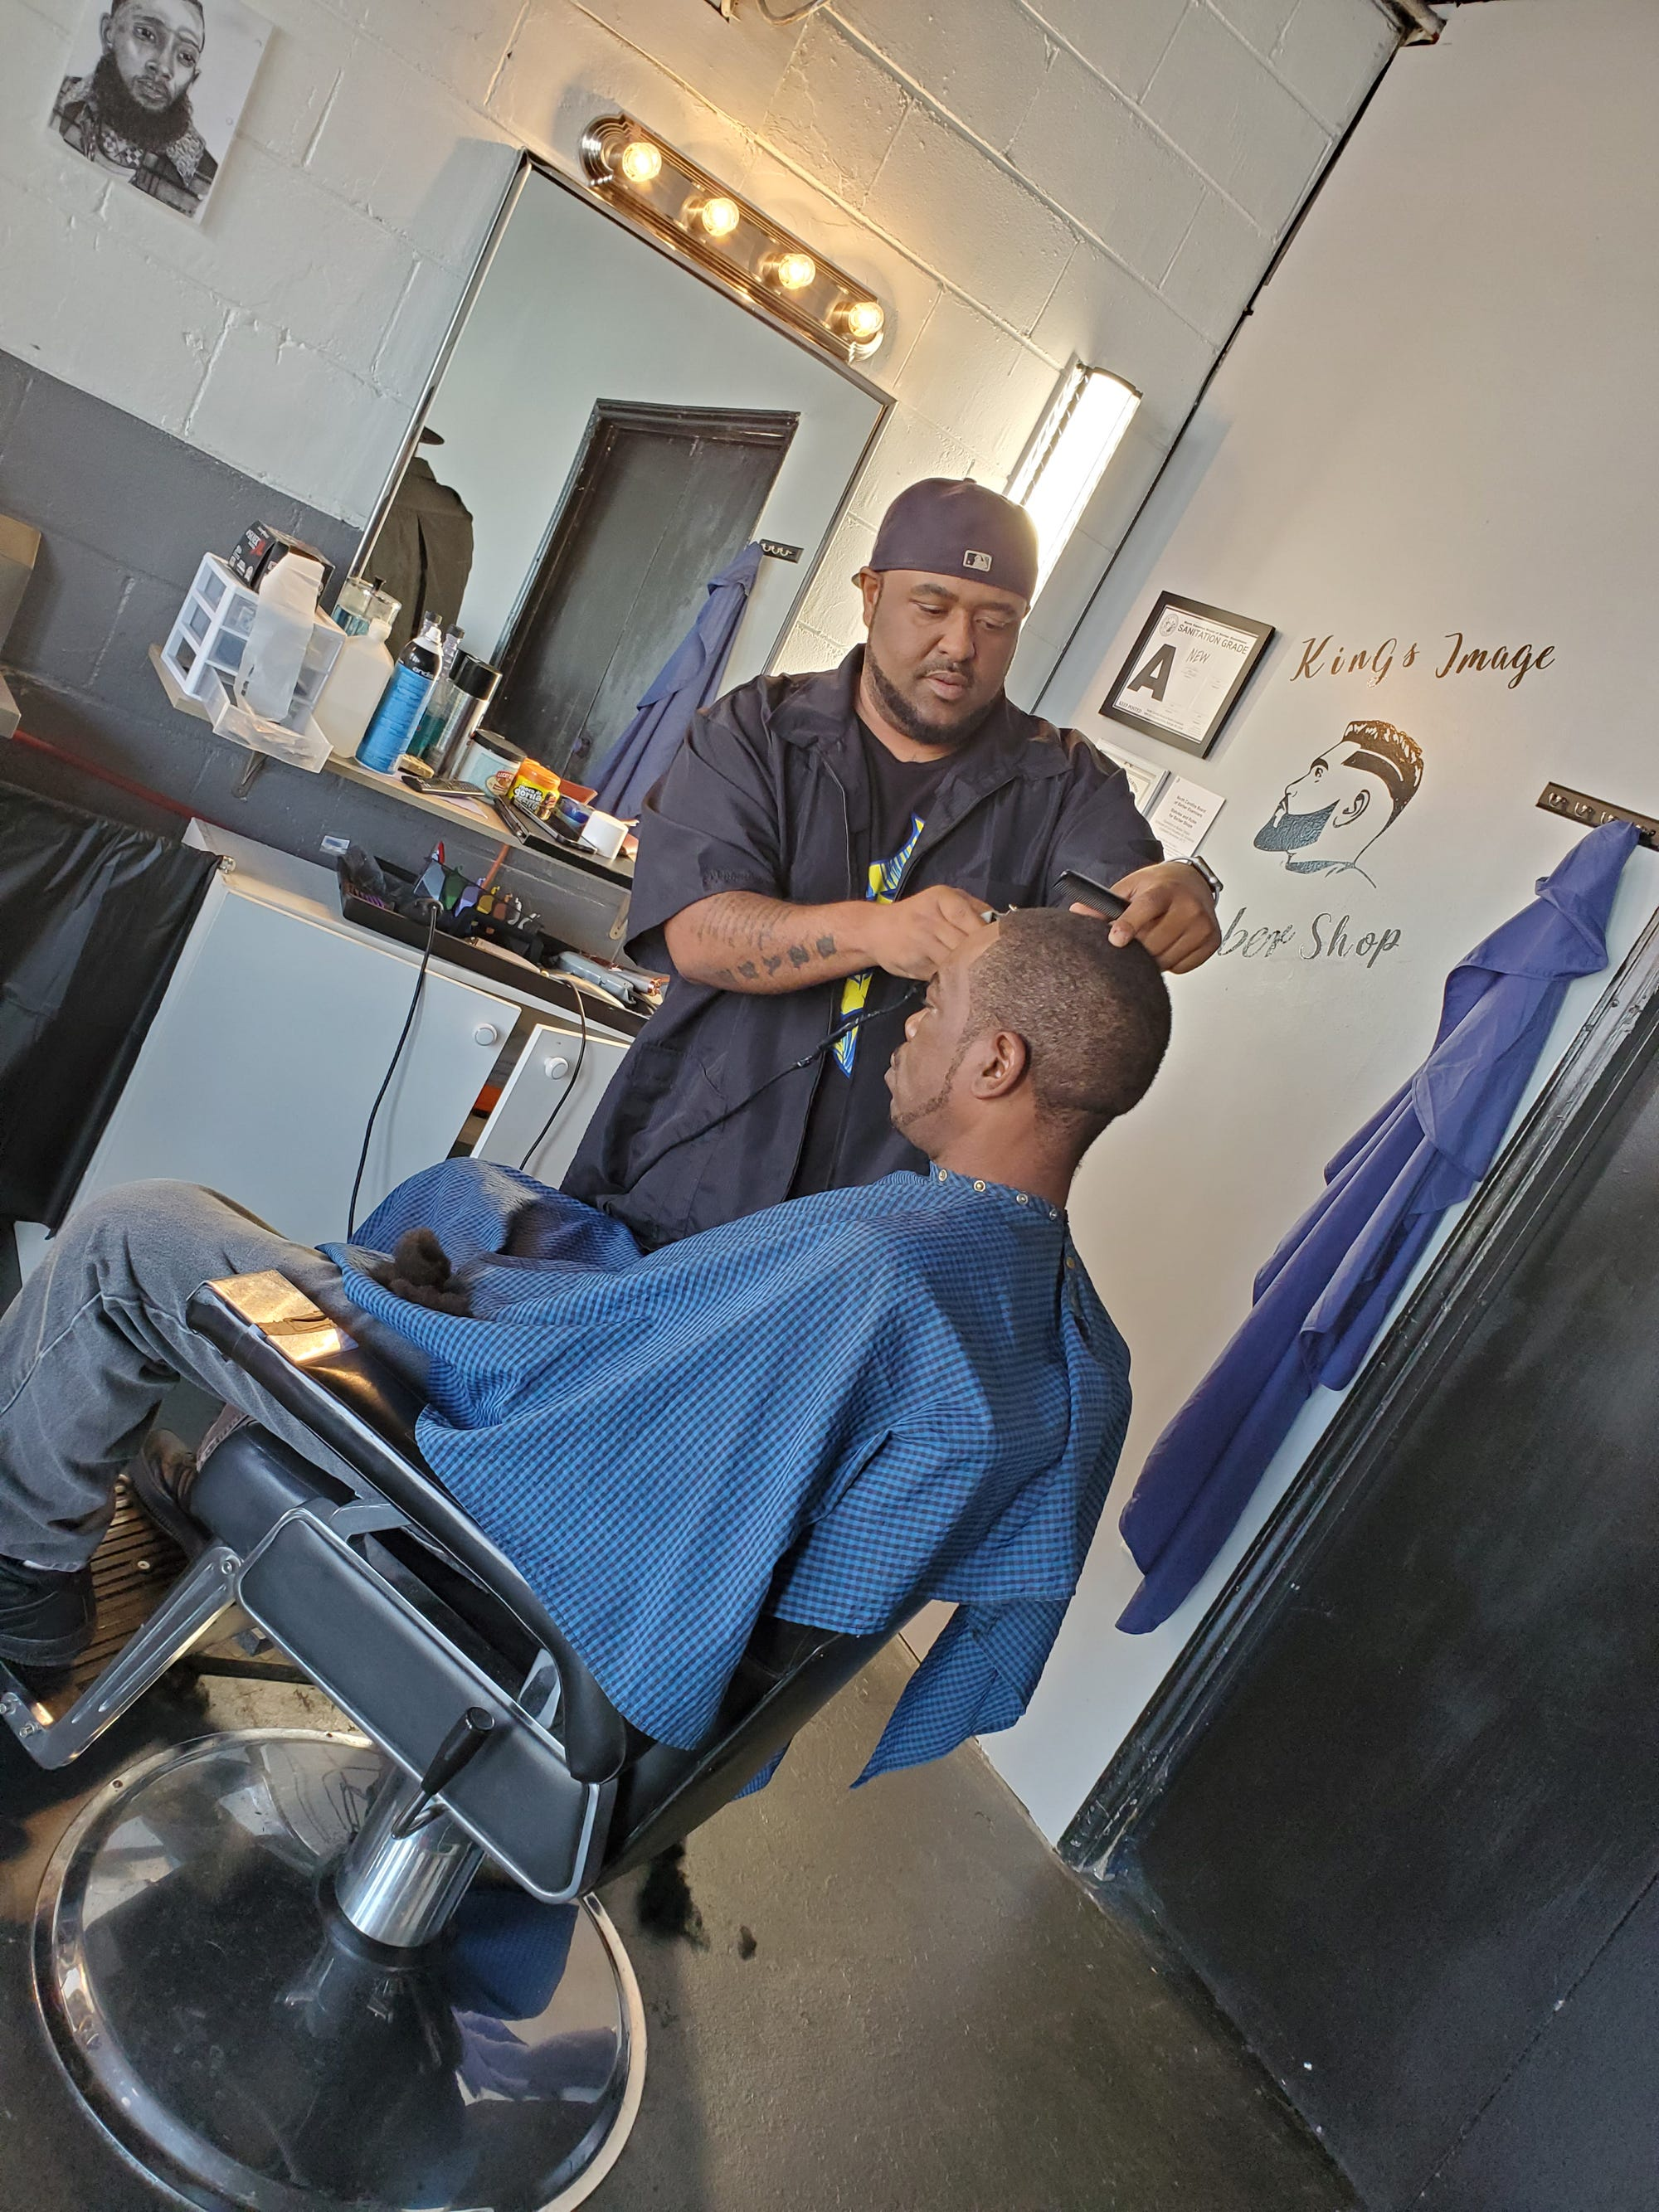 Lexington man opens barbershop and car wash in same location for ...